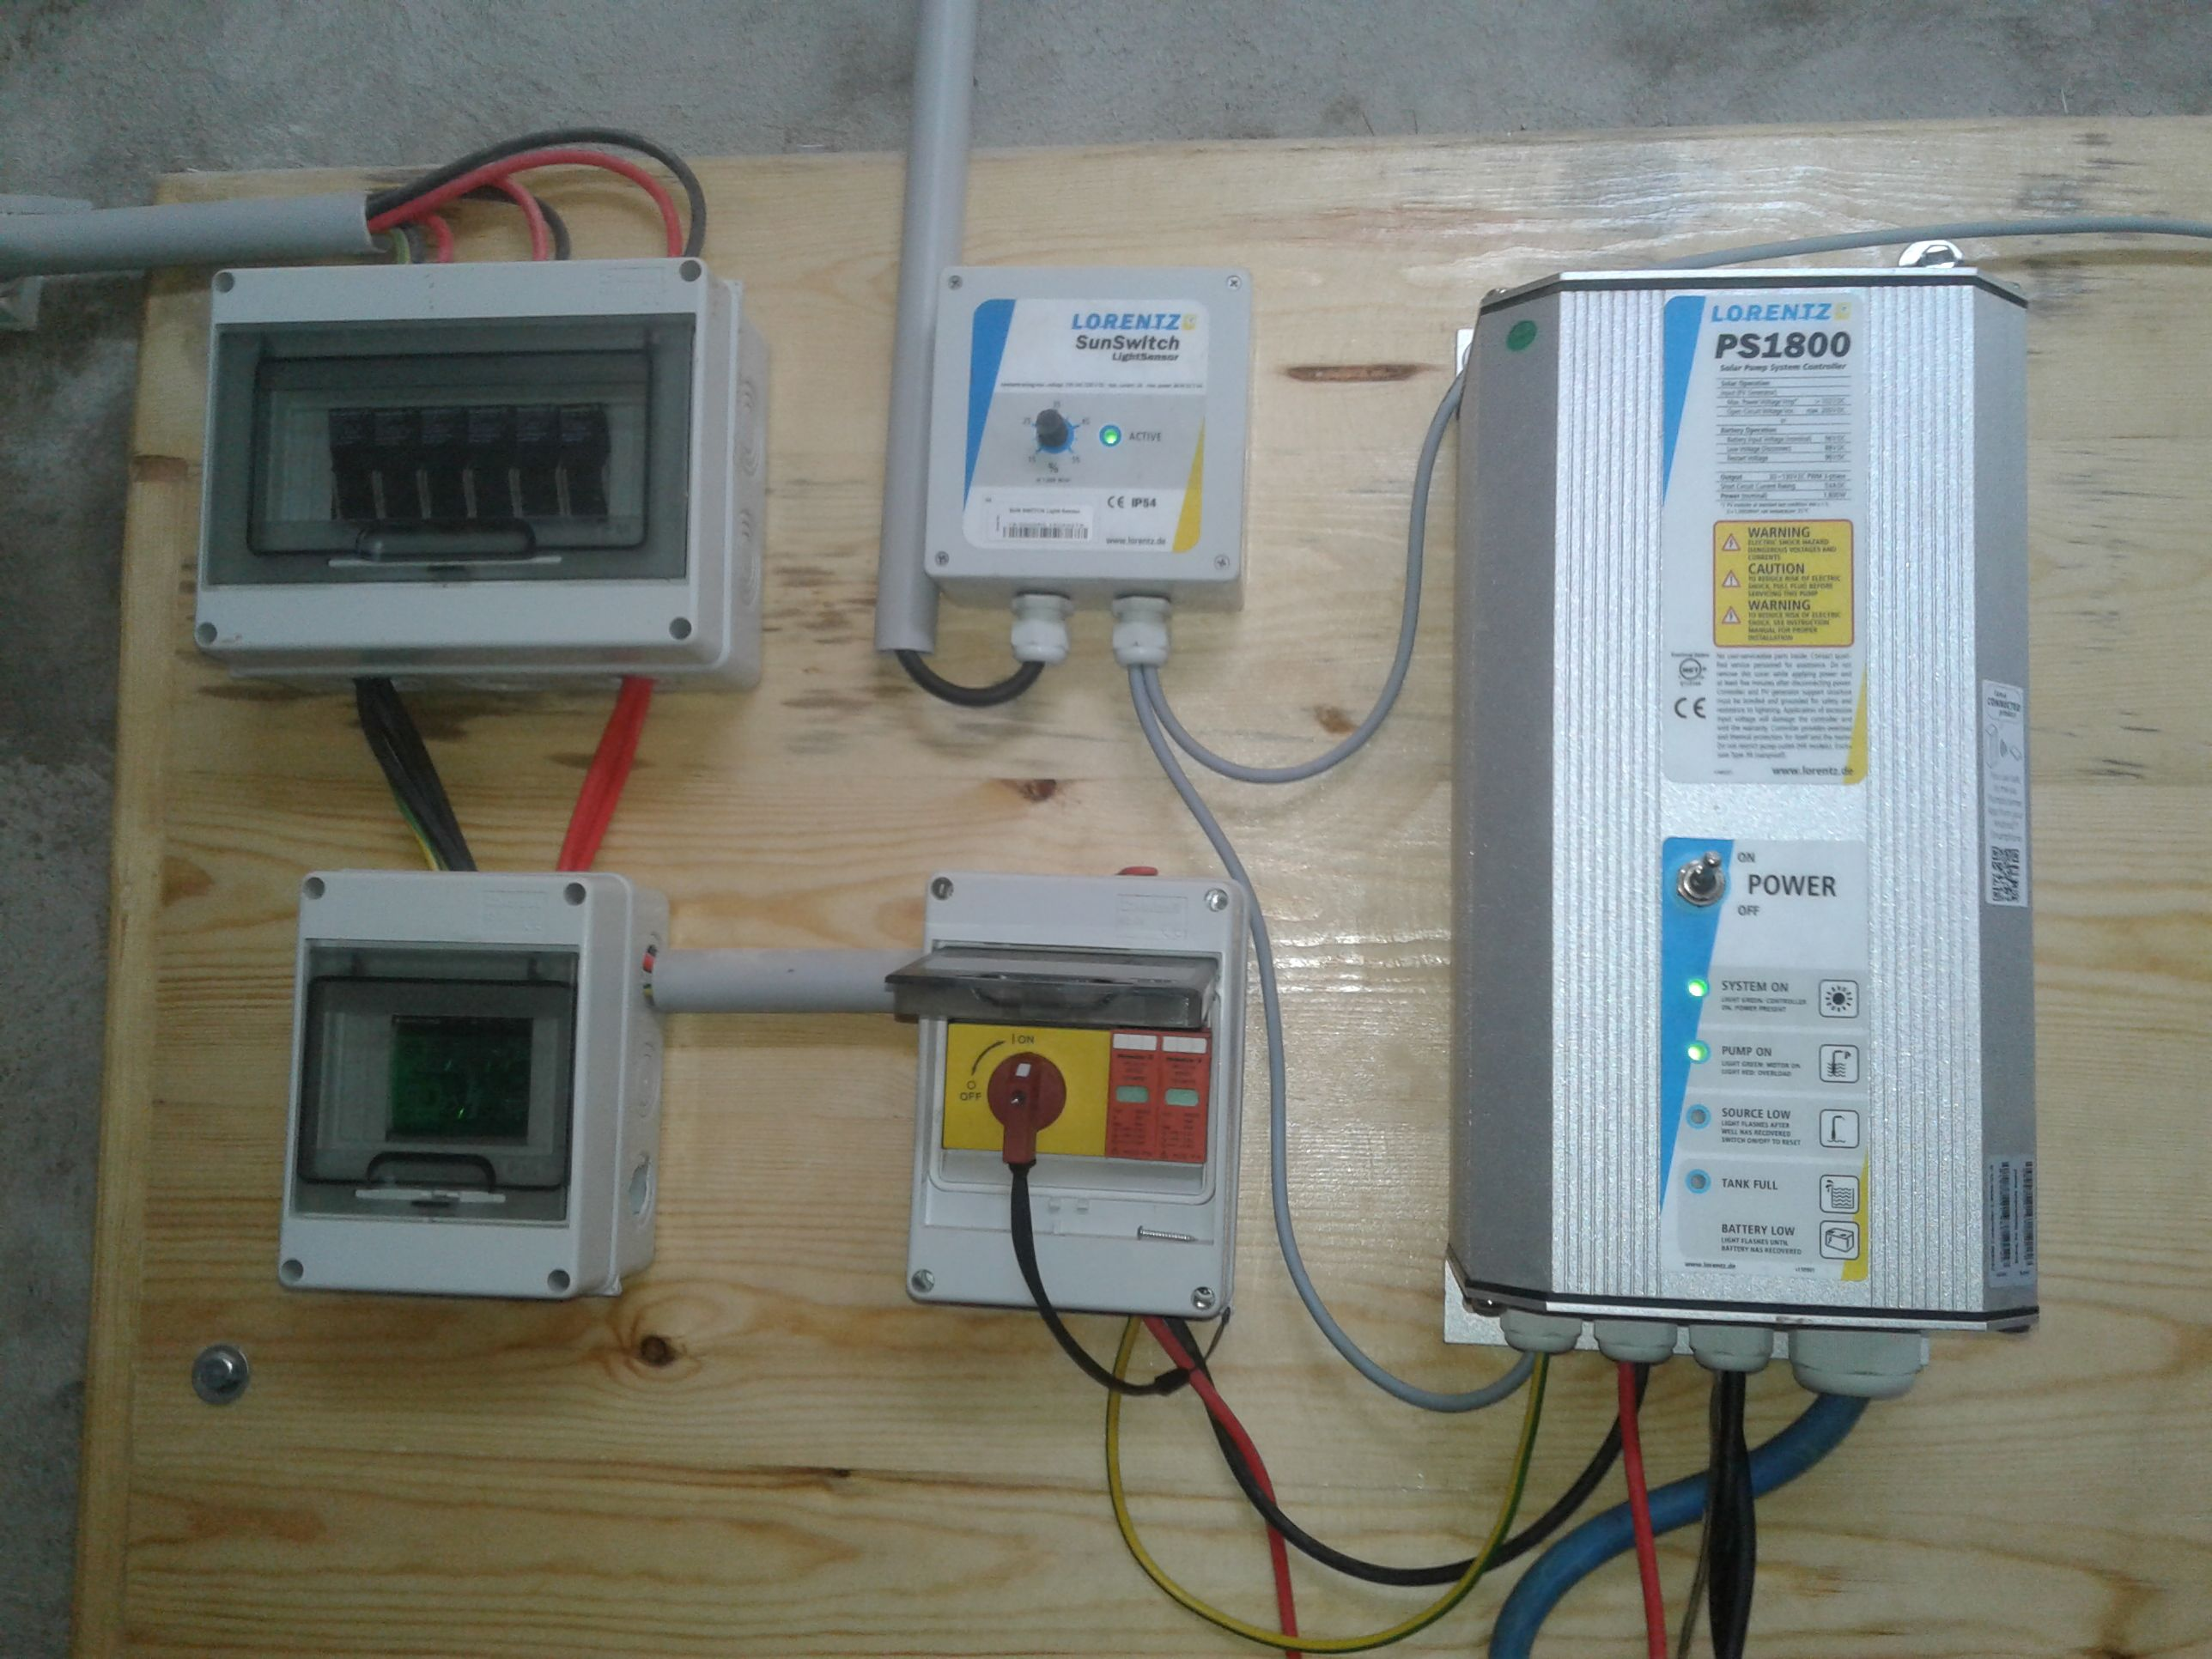 Lorentz Solar Pumping Reference In Teboursouk Eagle Wiring Devices Philippines March 2017